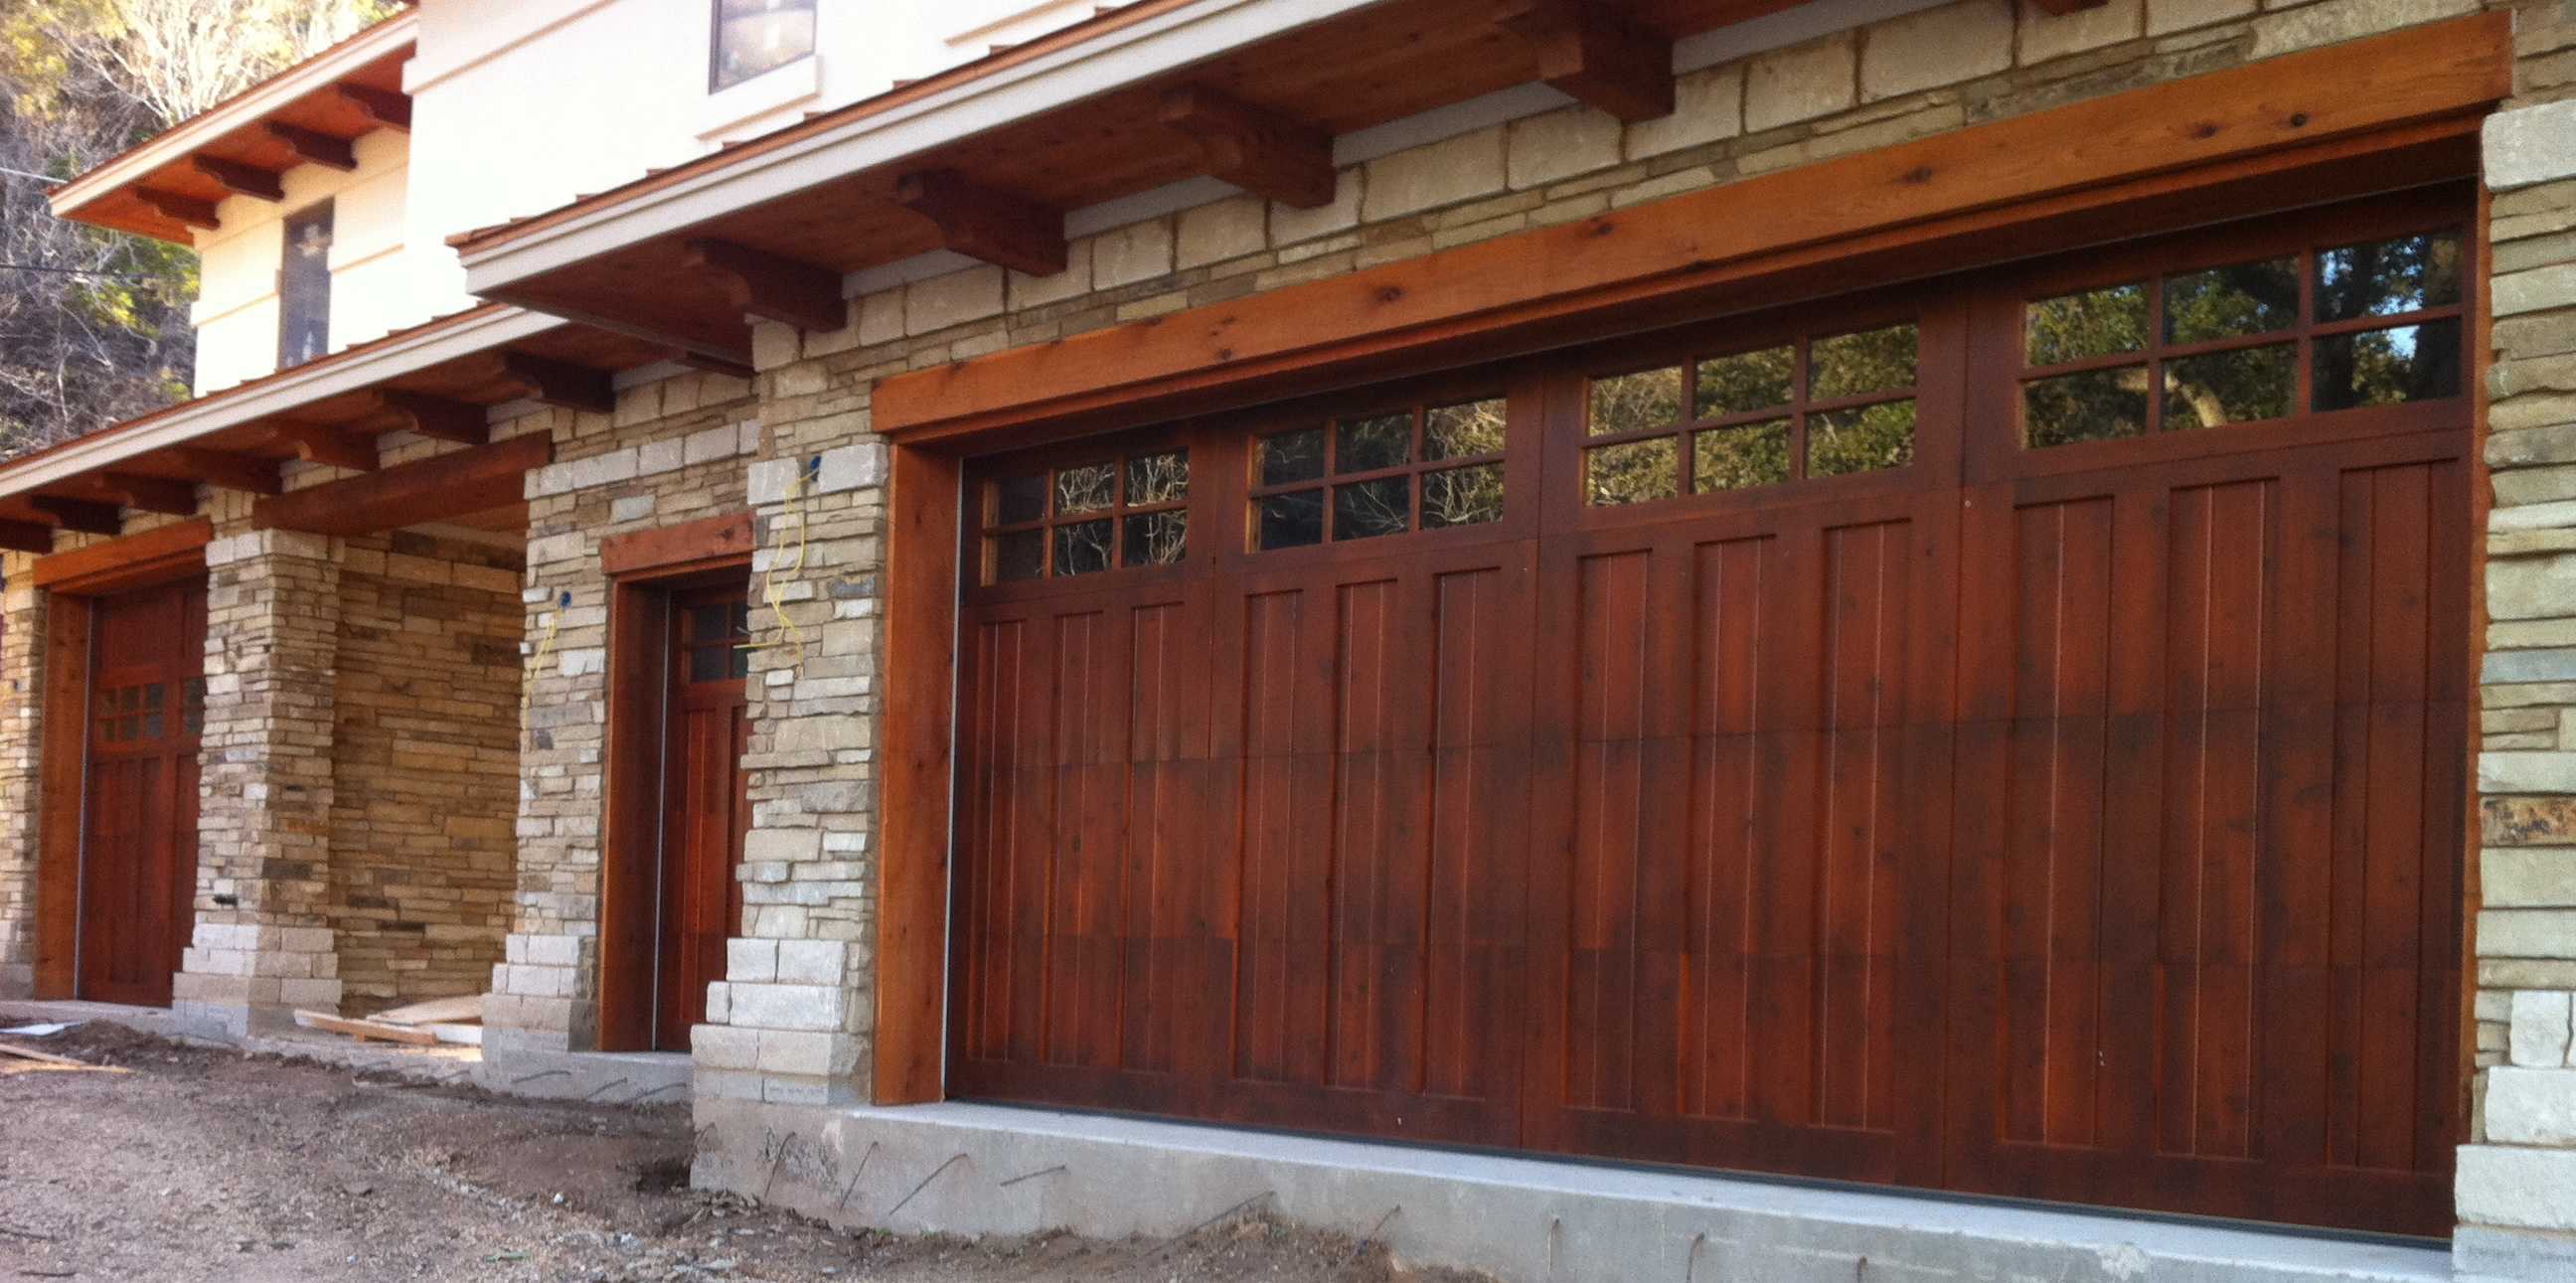 Le Meilleur Wood Garage Doors Repair And Install Toronto And Gta Ce Mois Ci